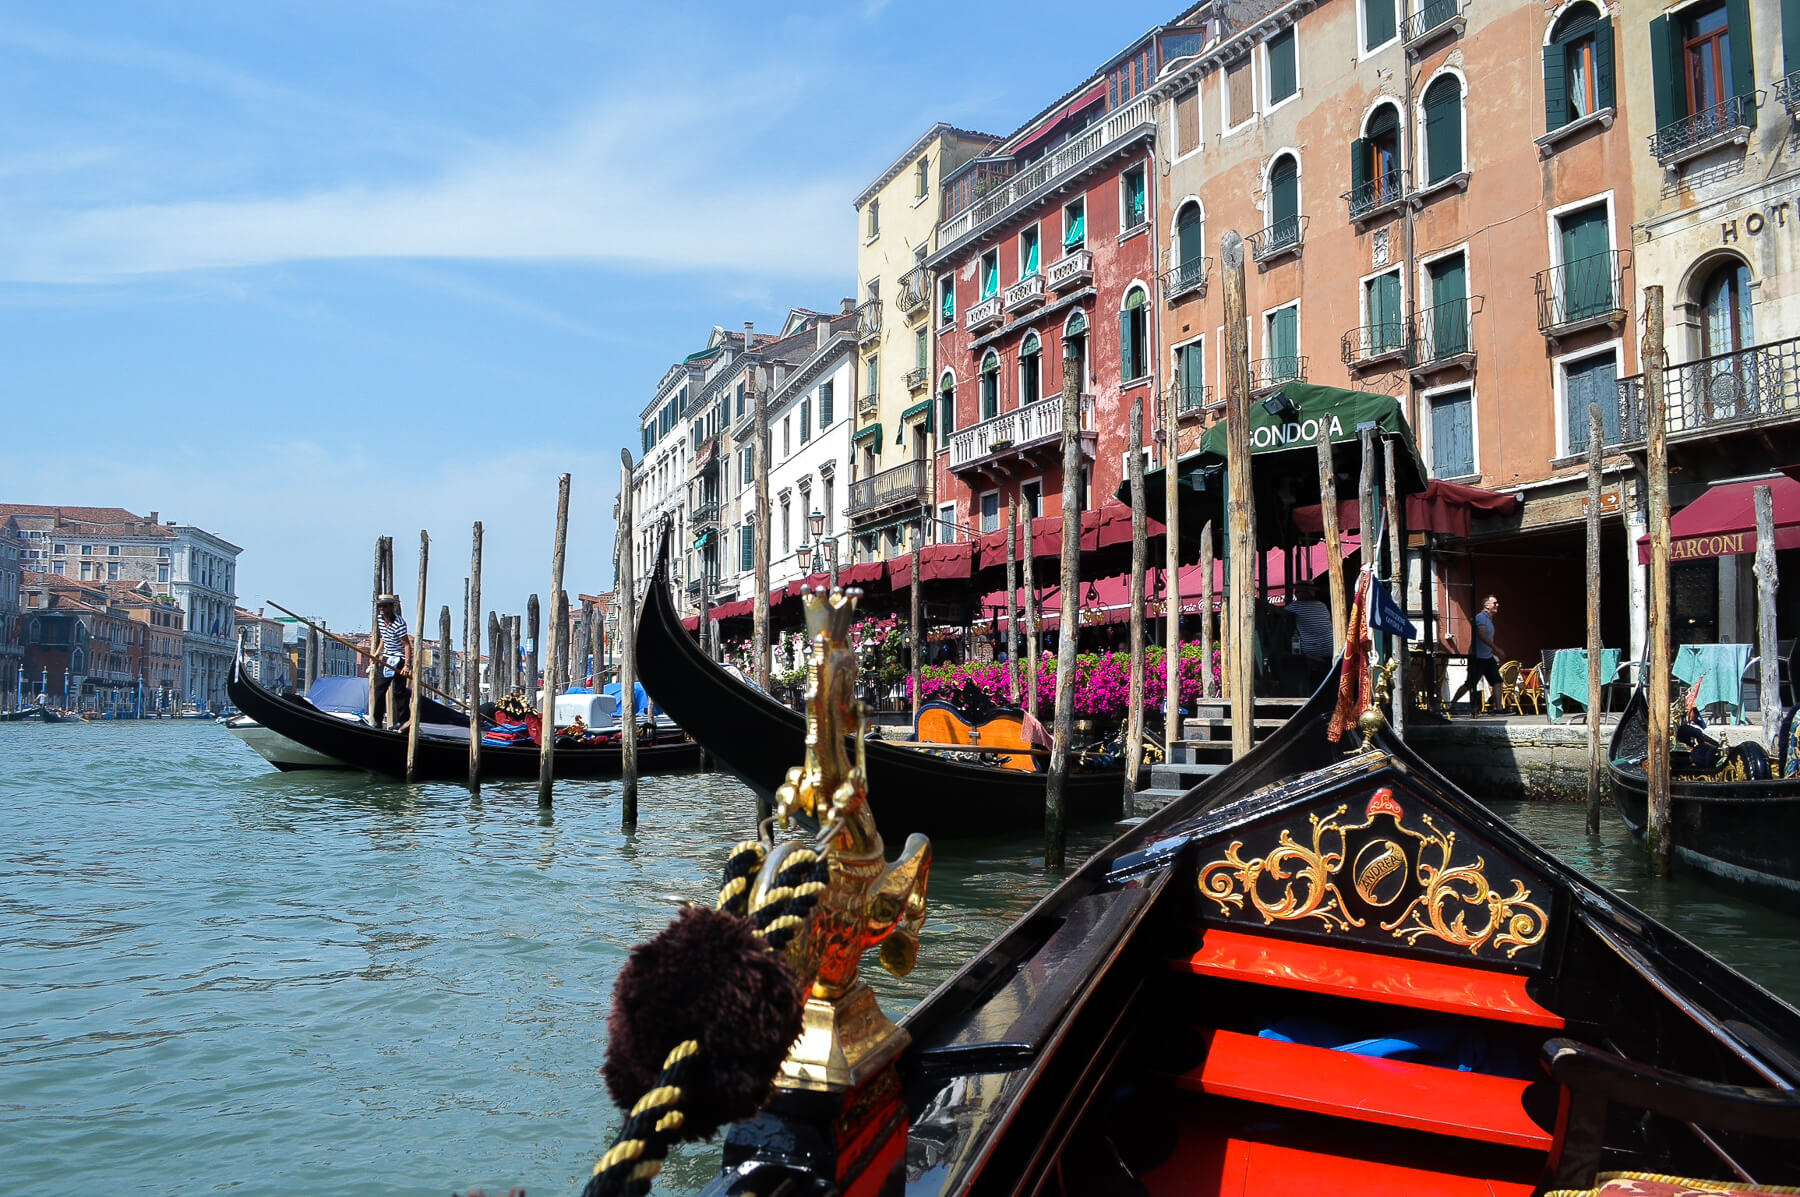 view from on venice gondola, looking into canal